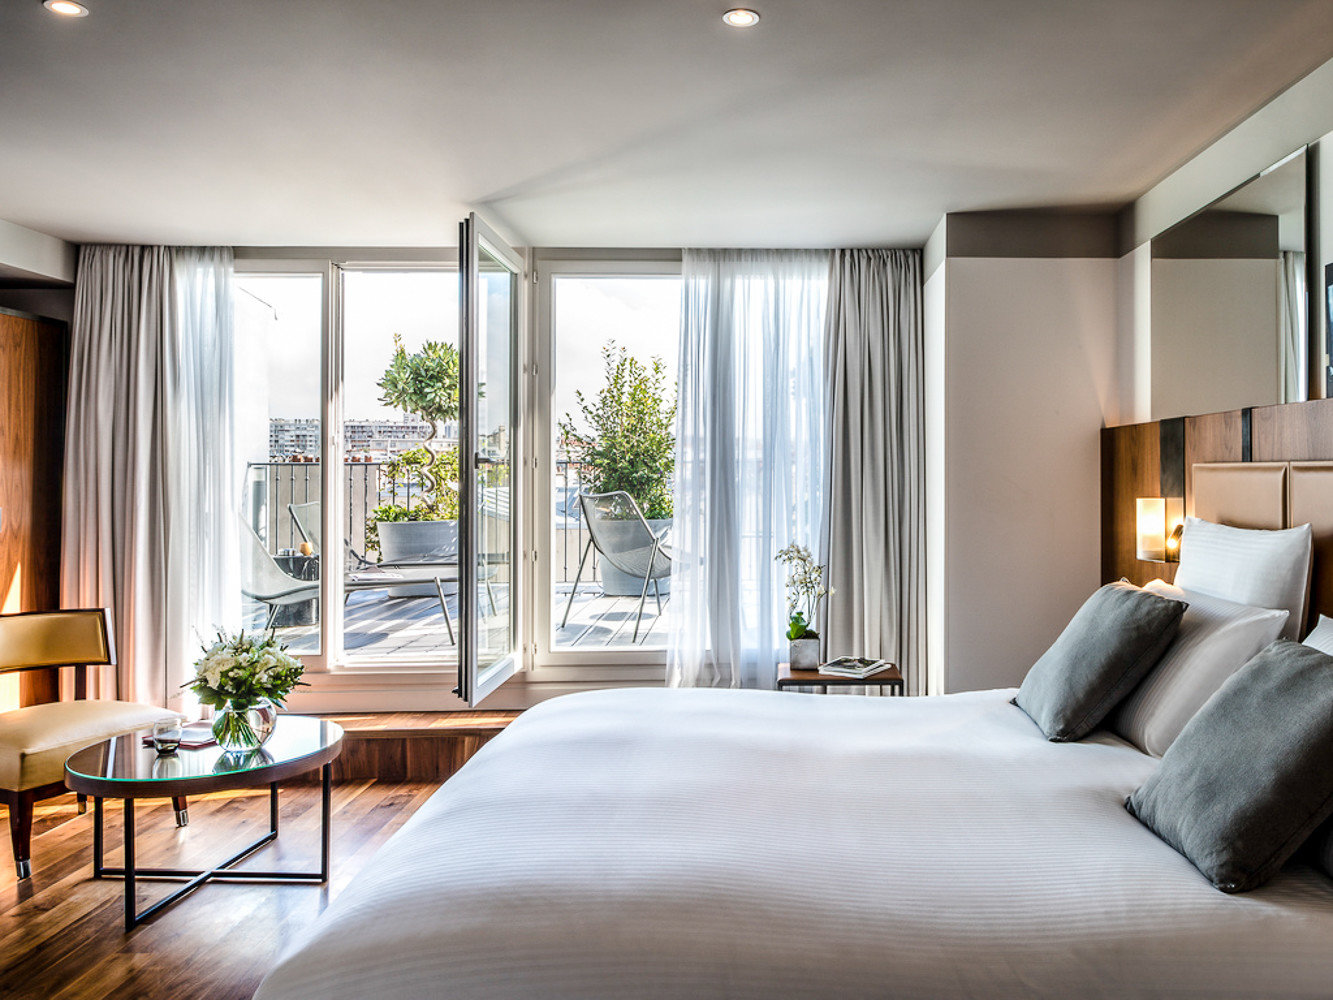 Boutique Hotels Hotels Jetsetter Guides Luxury Travel indoor bed ceiling wall room window floor hotel Bedroom interior design Suite real estate home penthouse apartment interior designer window treatment condominium estate nice living room bed frame